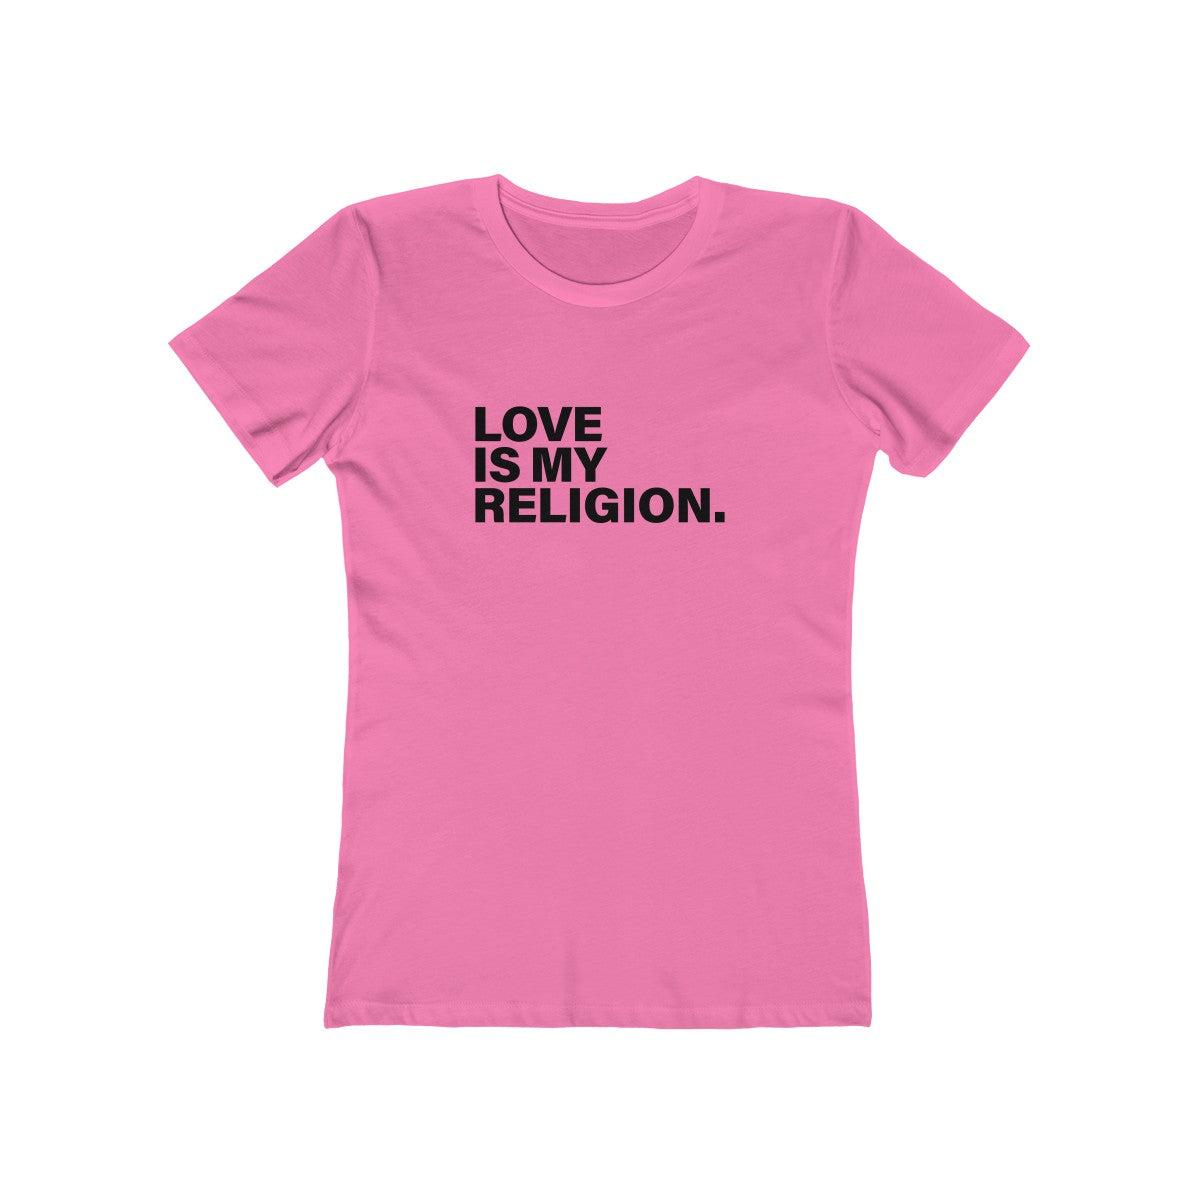 Love Is My Religion Women's The Boyfriend Tee - LIGHT COLORS